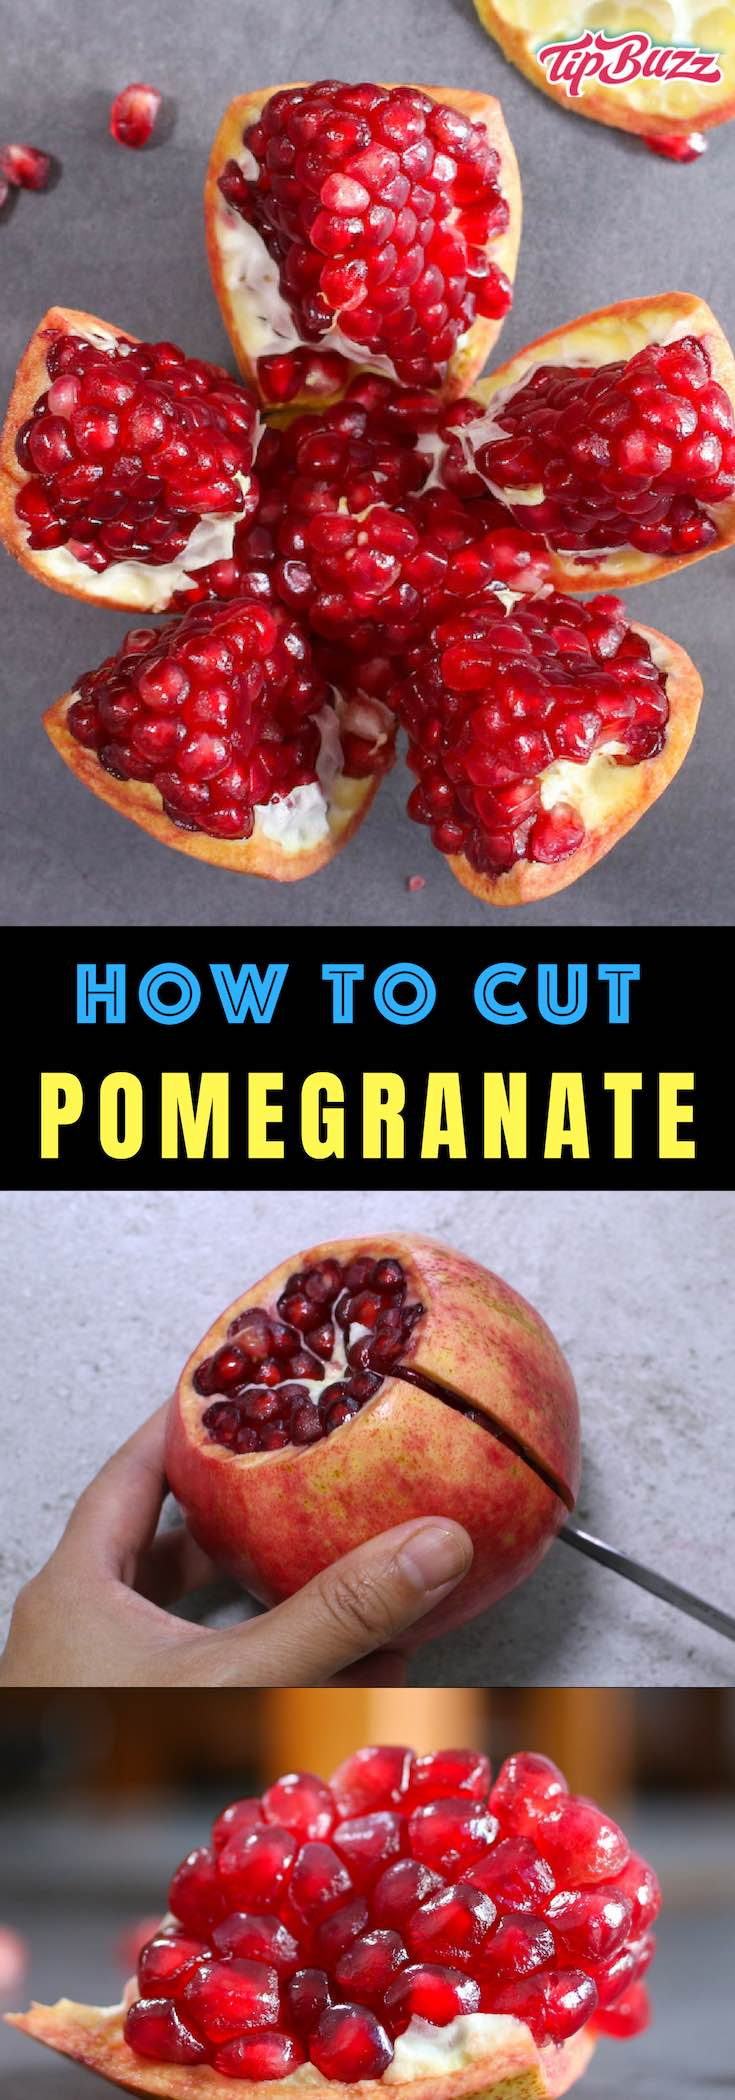 Learn how to cut a pomegranate quickly and easily using this simple step-by-step guide. Pomegranate makes a delicious and healthy snack with sweet, tart flavors and beautiful colors.